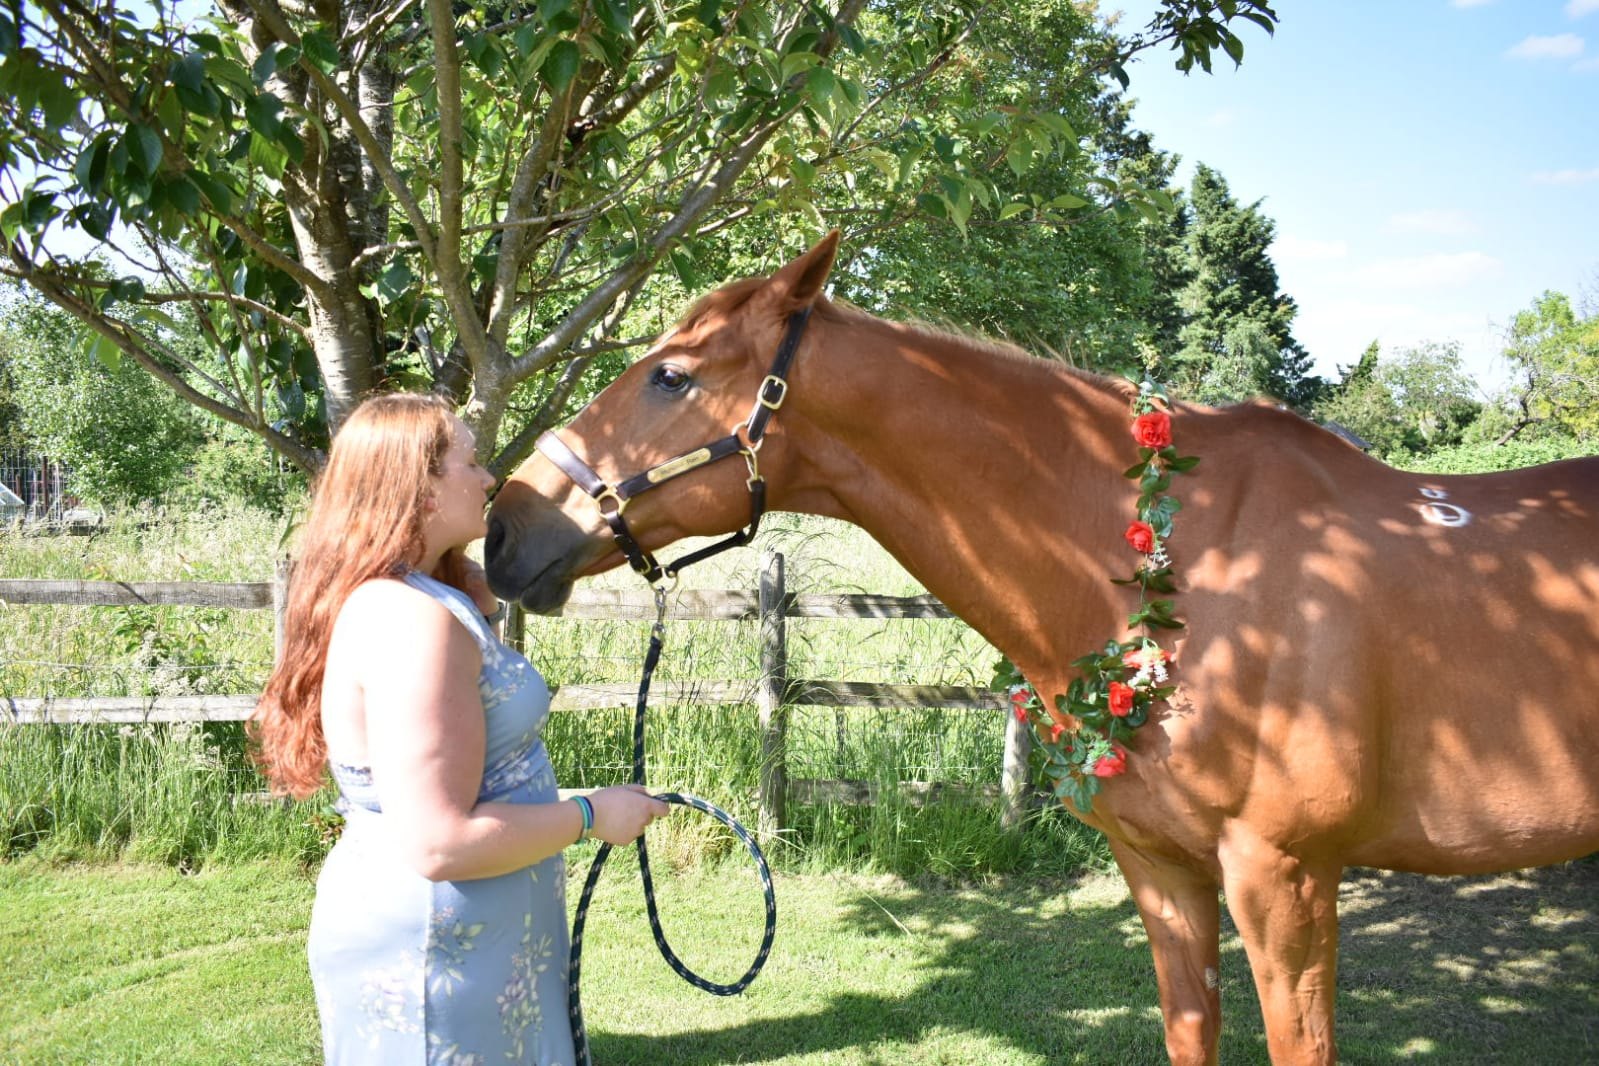 5 things horse owners won't admit about horses